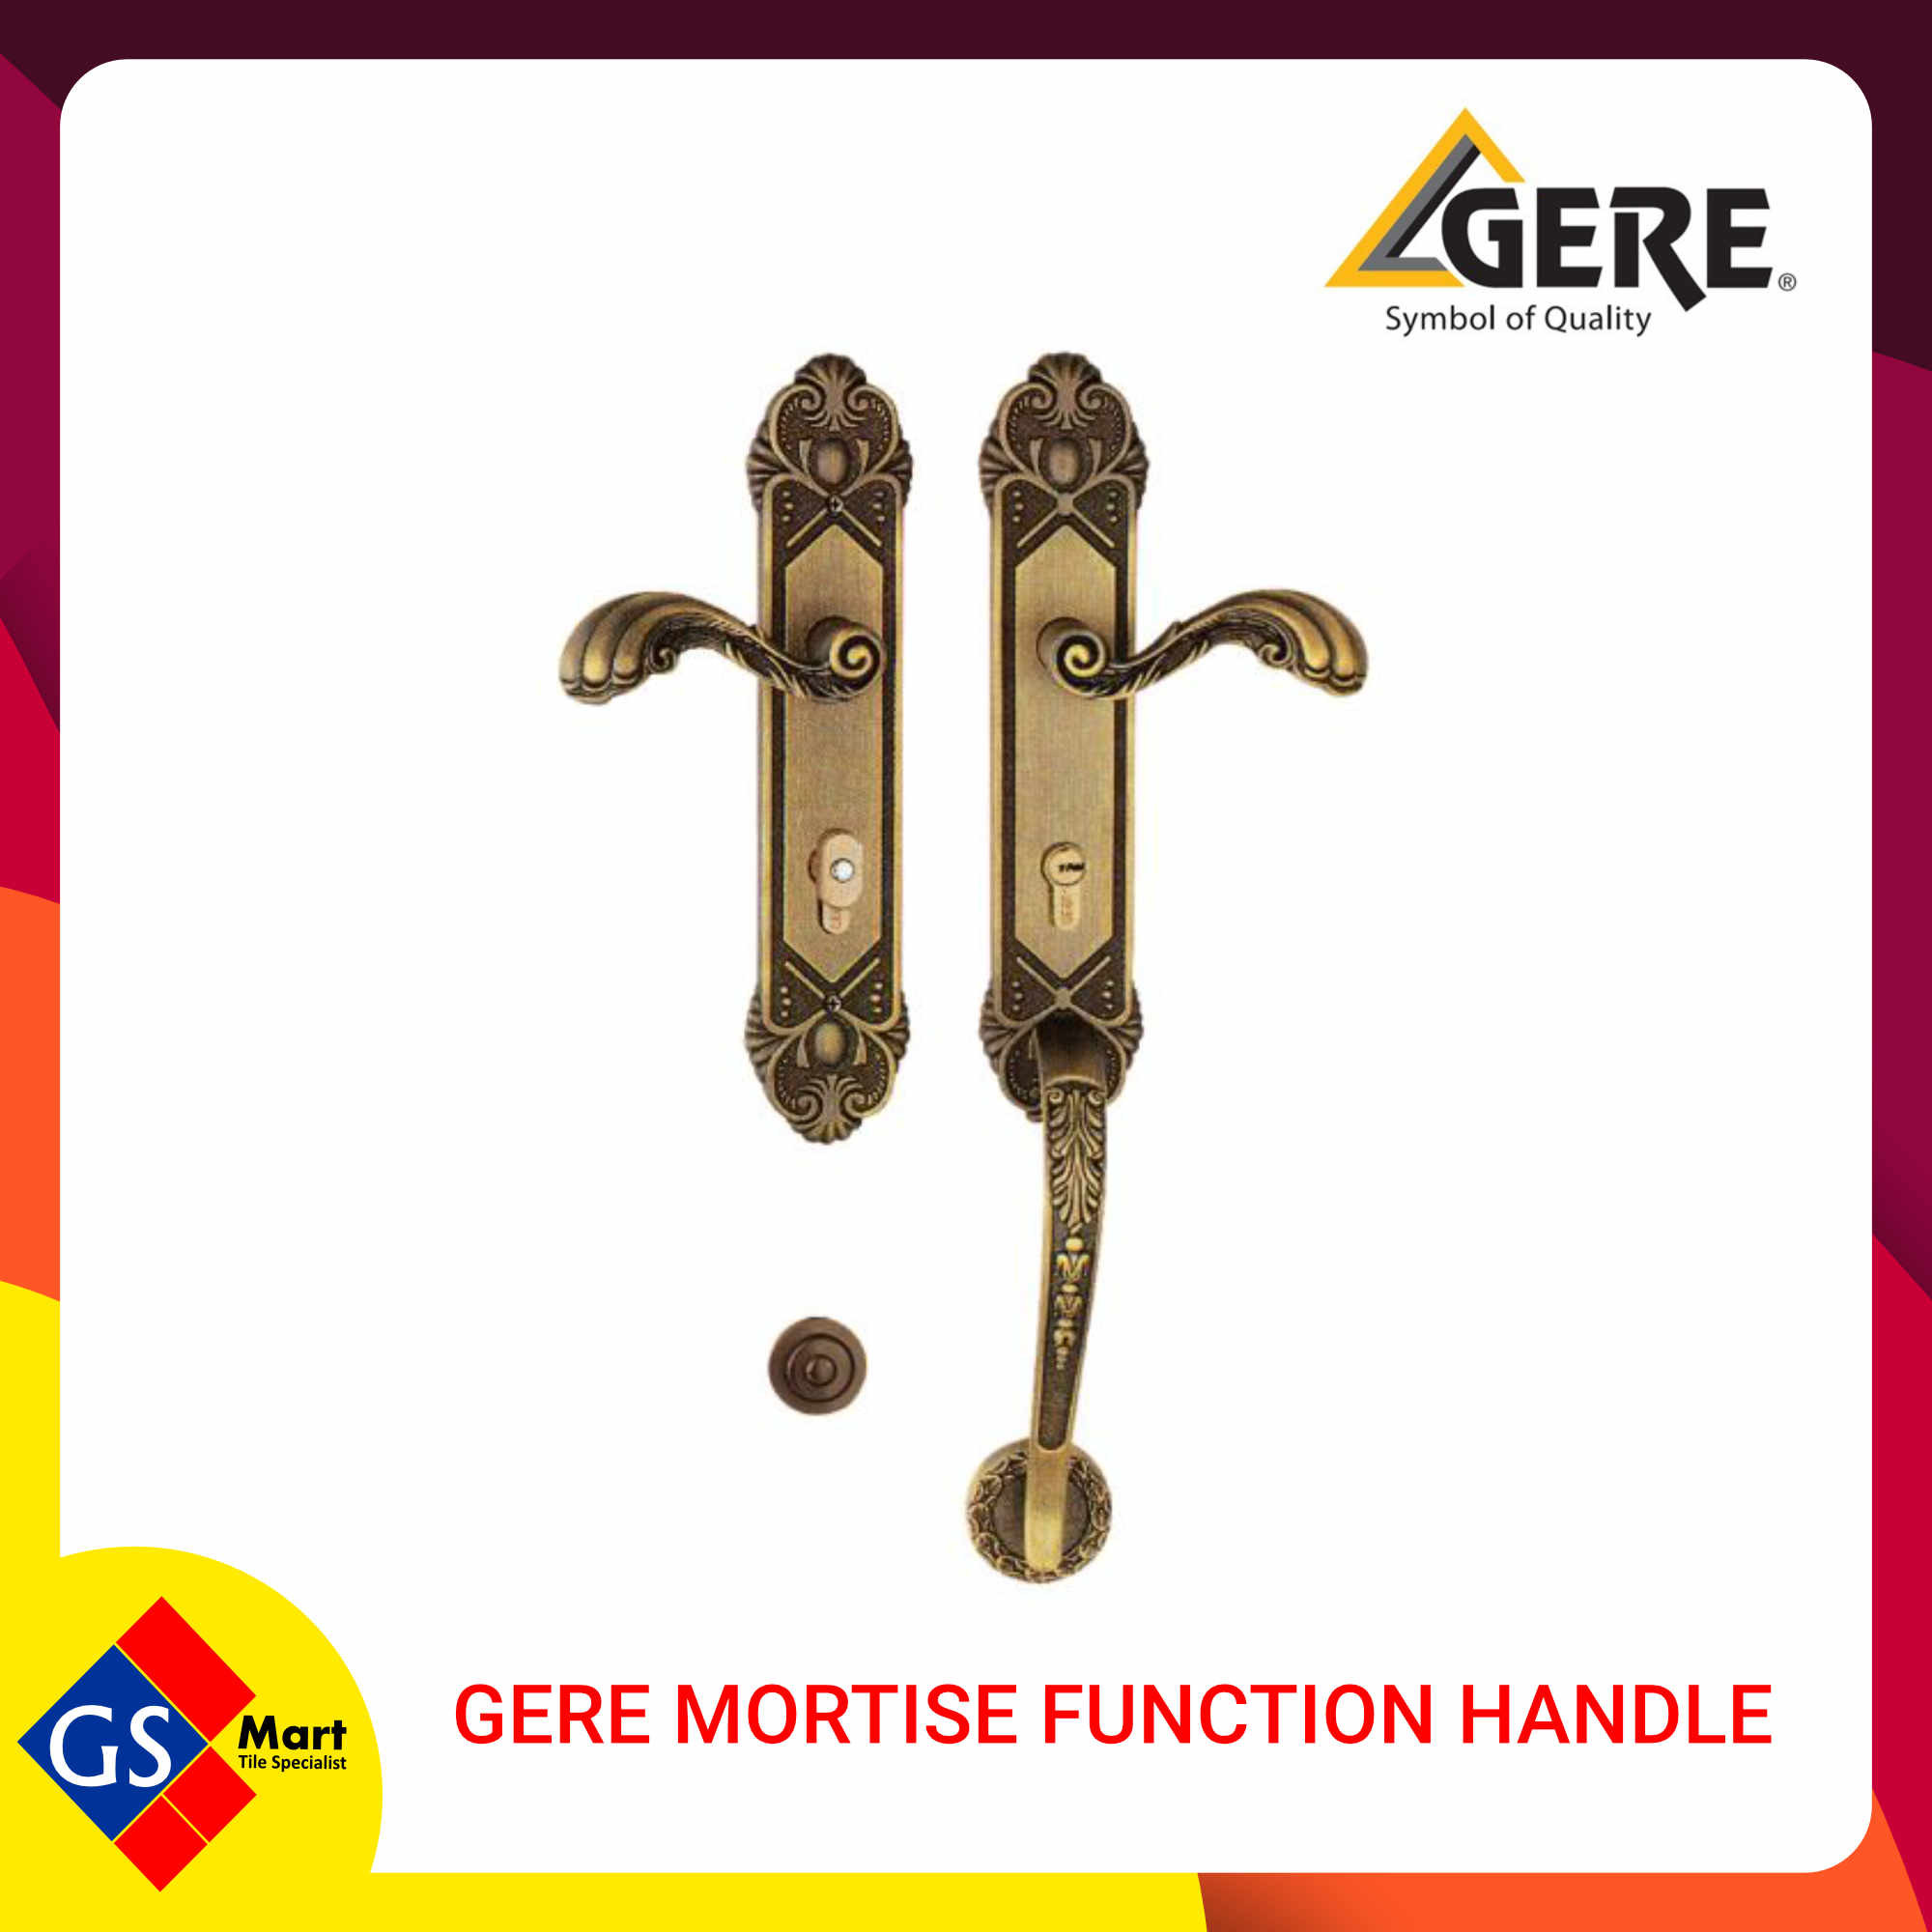 GERE MORTISE FUNCTION HANDLE